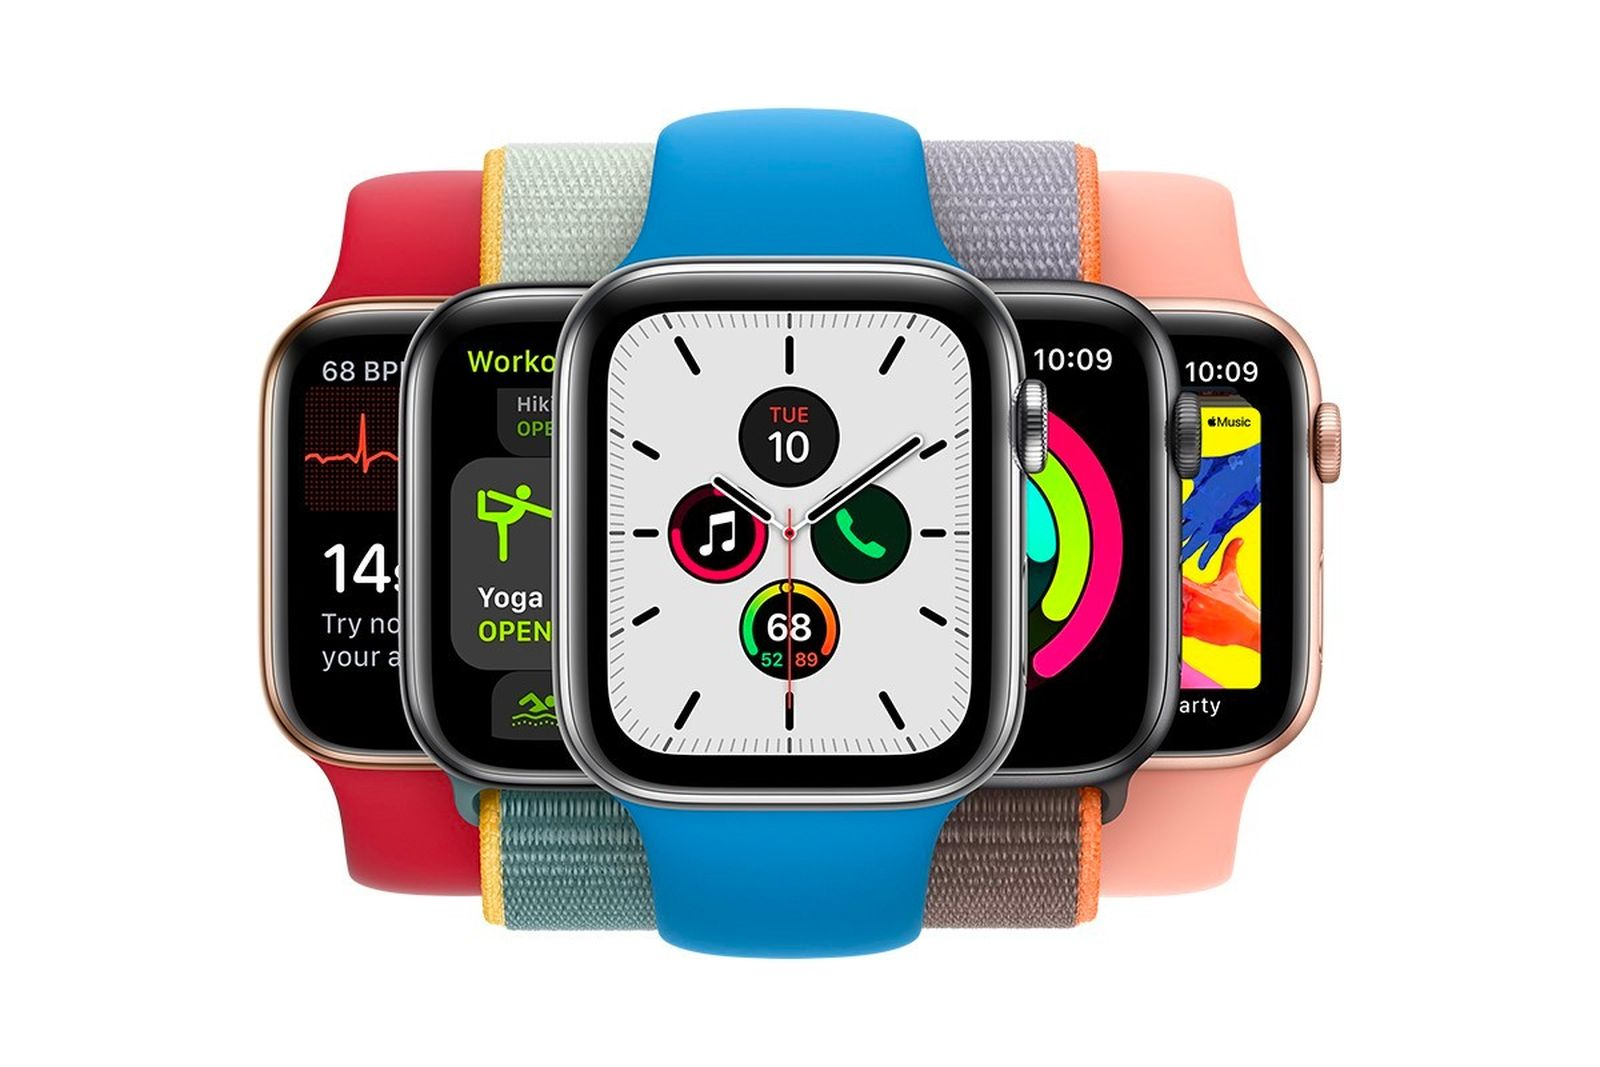 apple-watch-band-colors-spring-2020-01